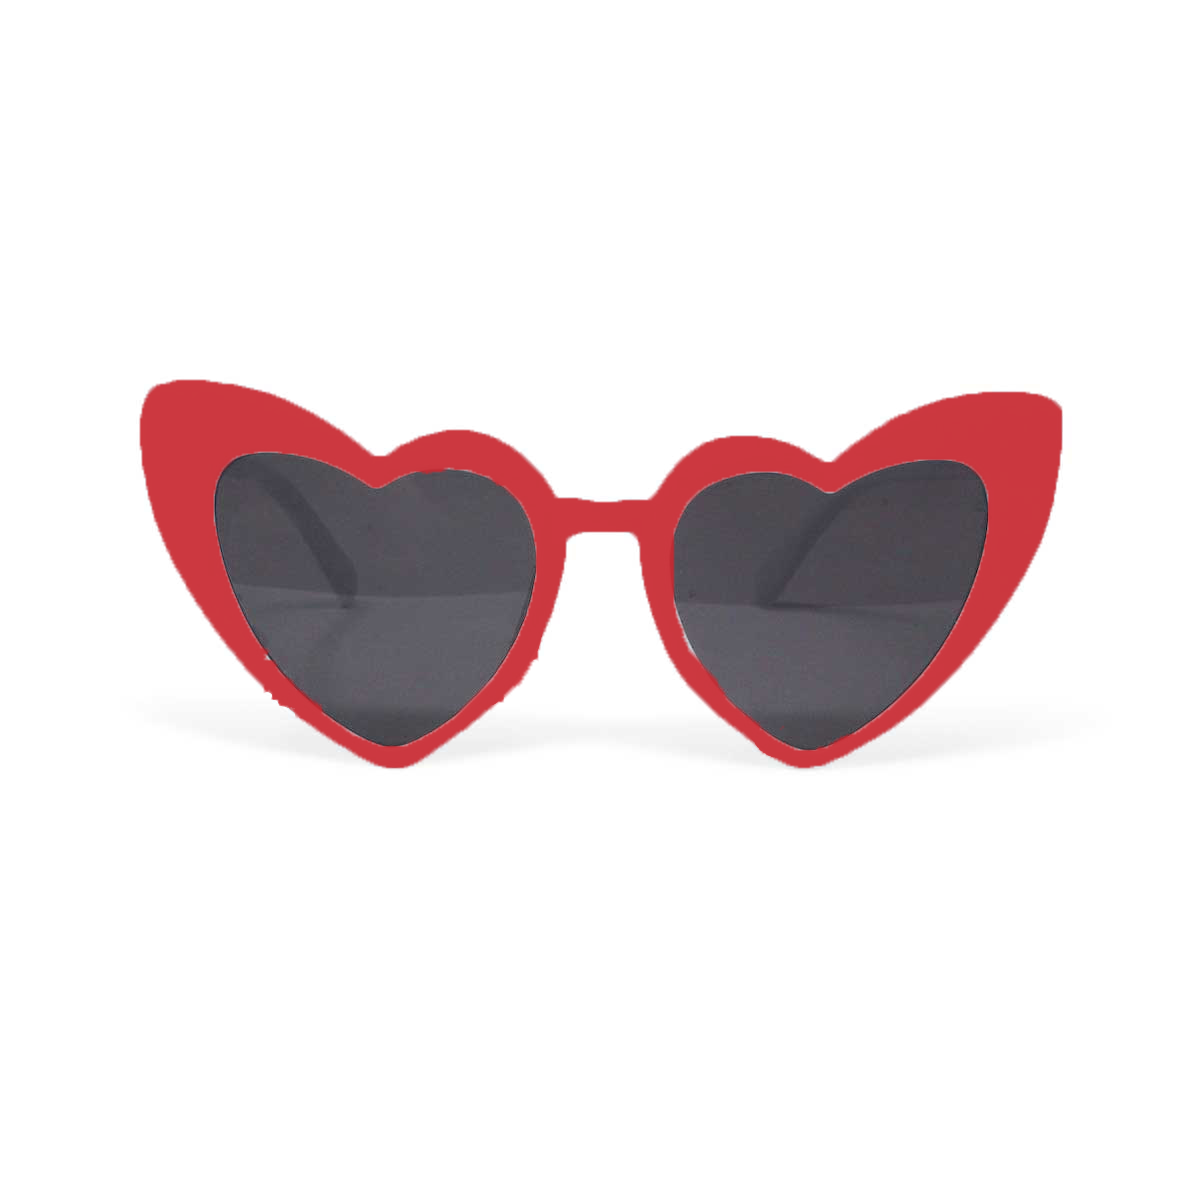 Retro Heart Shaped Sunglasses - Red